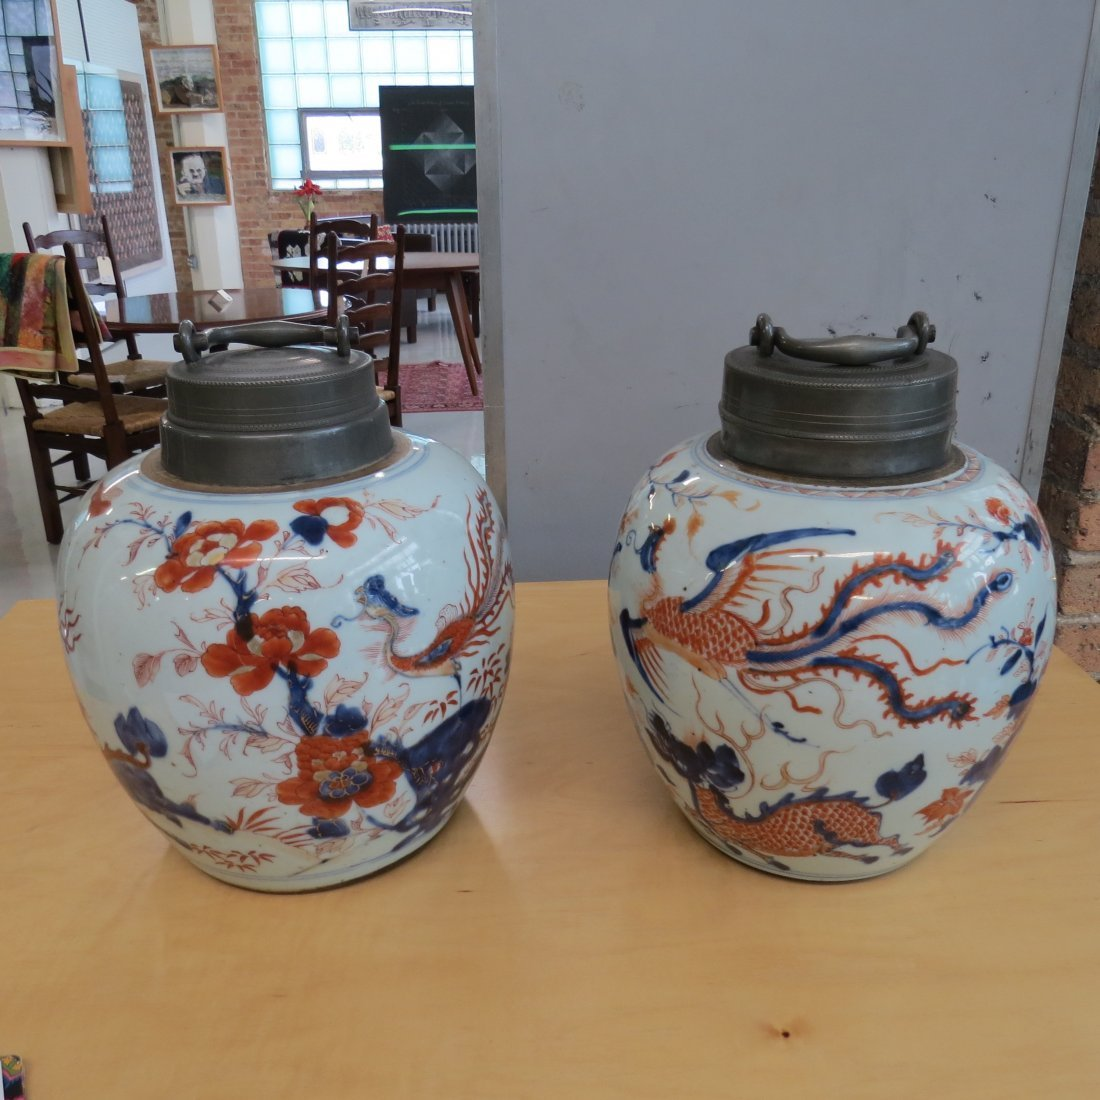 A Pair of 18th Century Chinese Porcelain Tea Caddies. - 2